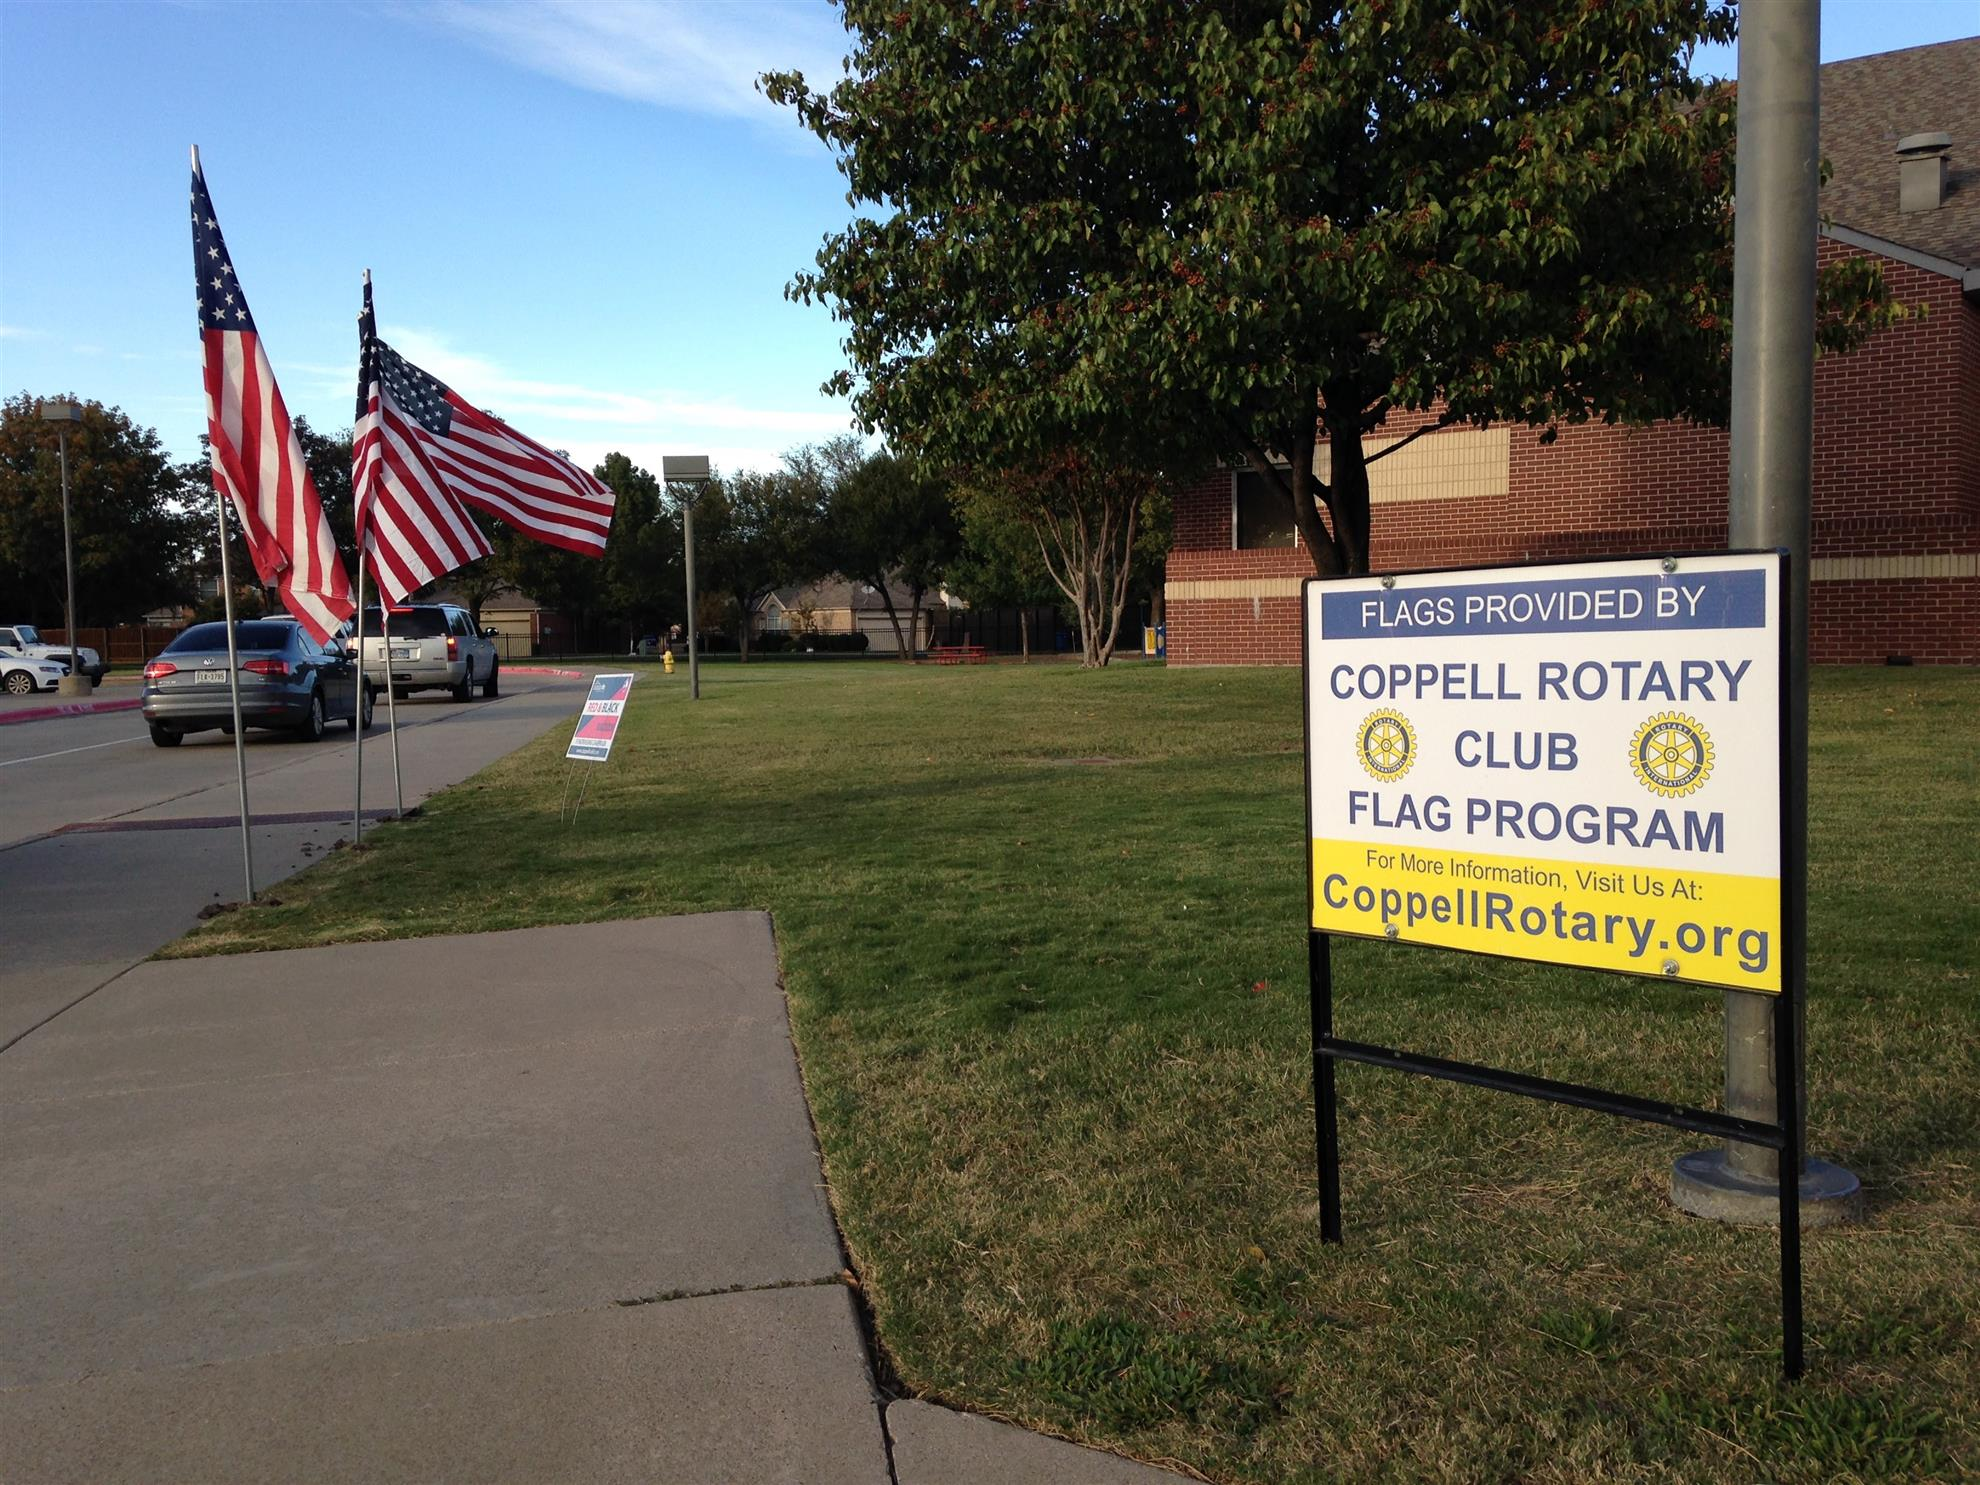 The Coppell Rotary Club provided entrance flags to W H Wilson Elementary  school in support of their Veterans Day Program Veterans Day.